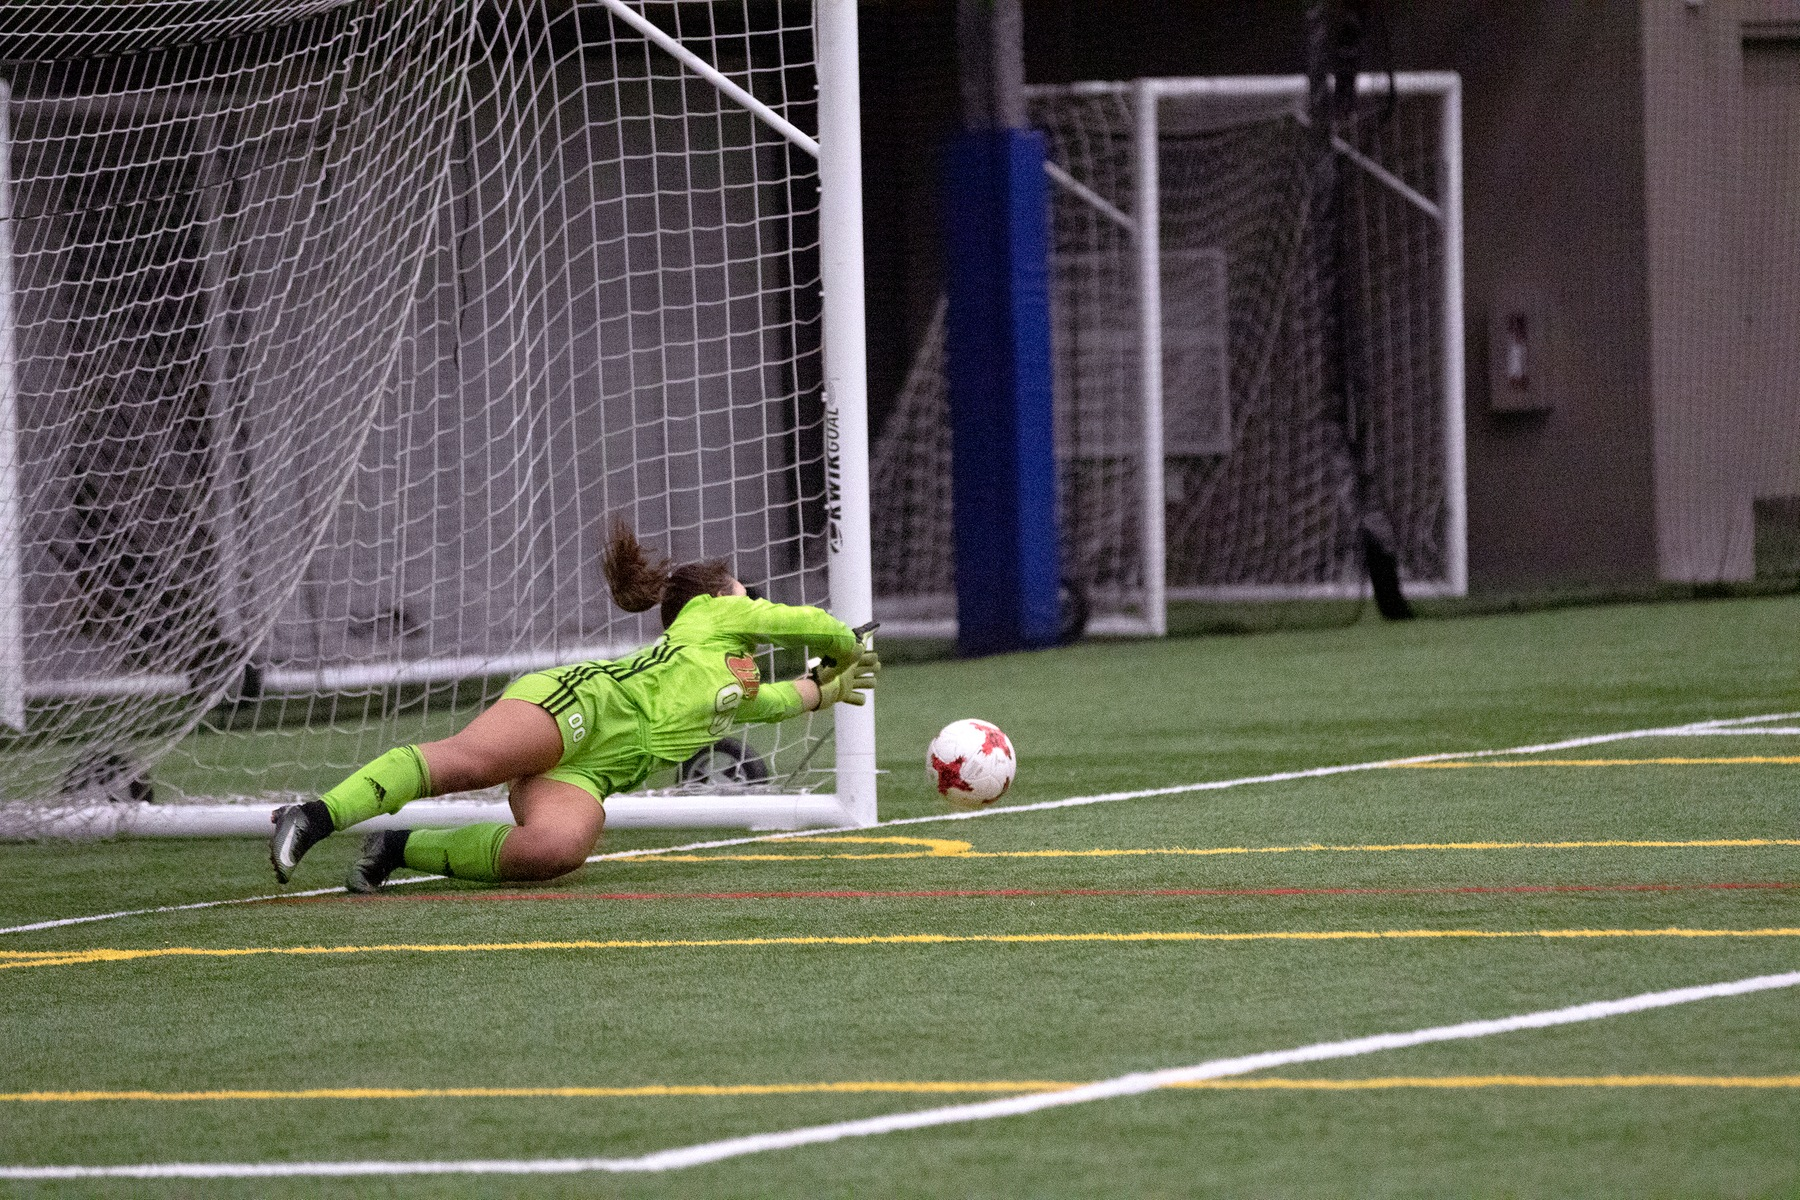 Taryn Raabe dives to make a stop on a Thompson Rivers penalty kick during Canada West conference women's soccer action at the WSF North indoor pitch Saturday, Sept. 21, 2019. (David Larkins/Wesmen Athletics)